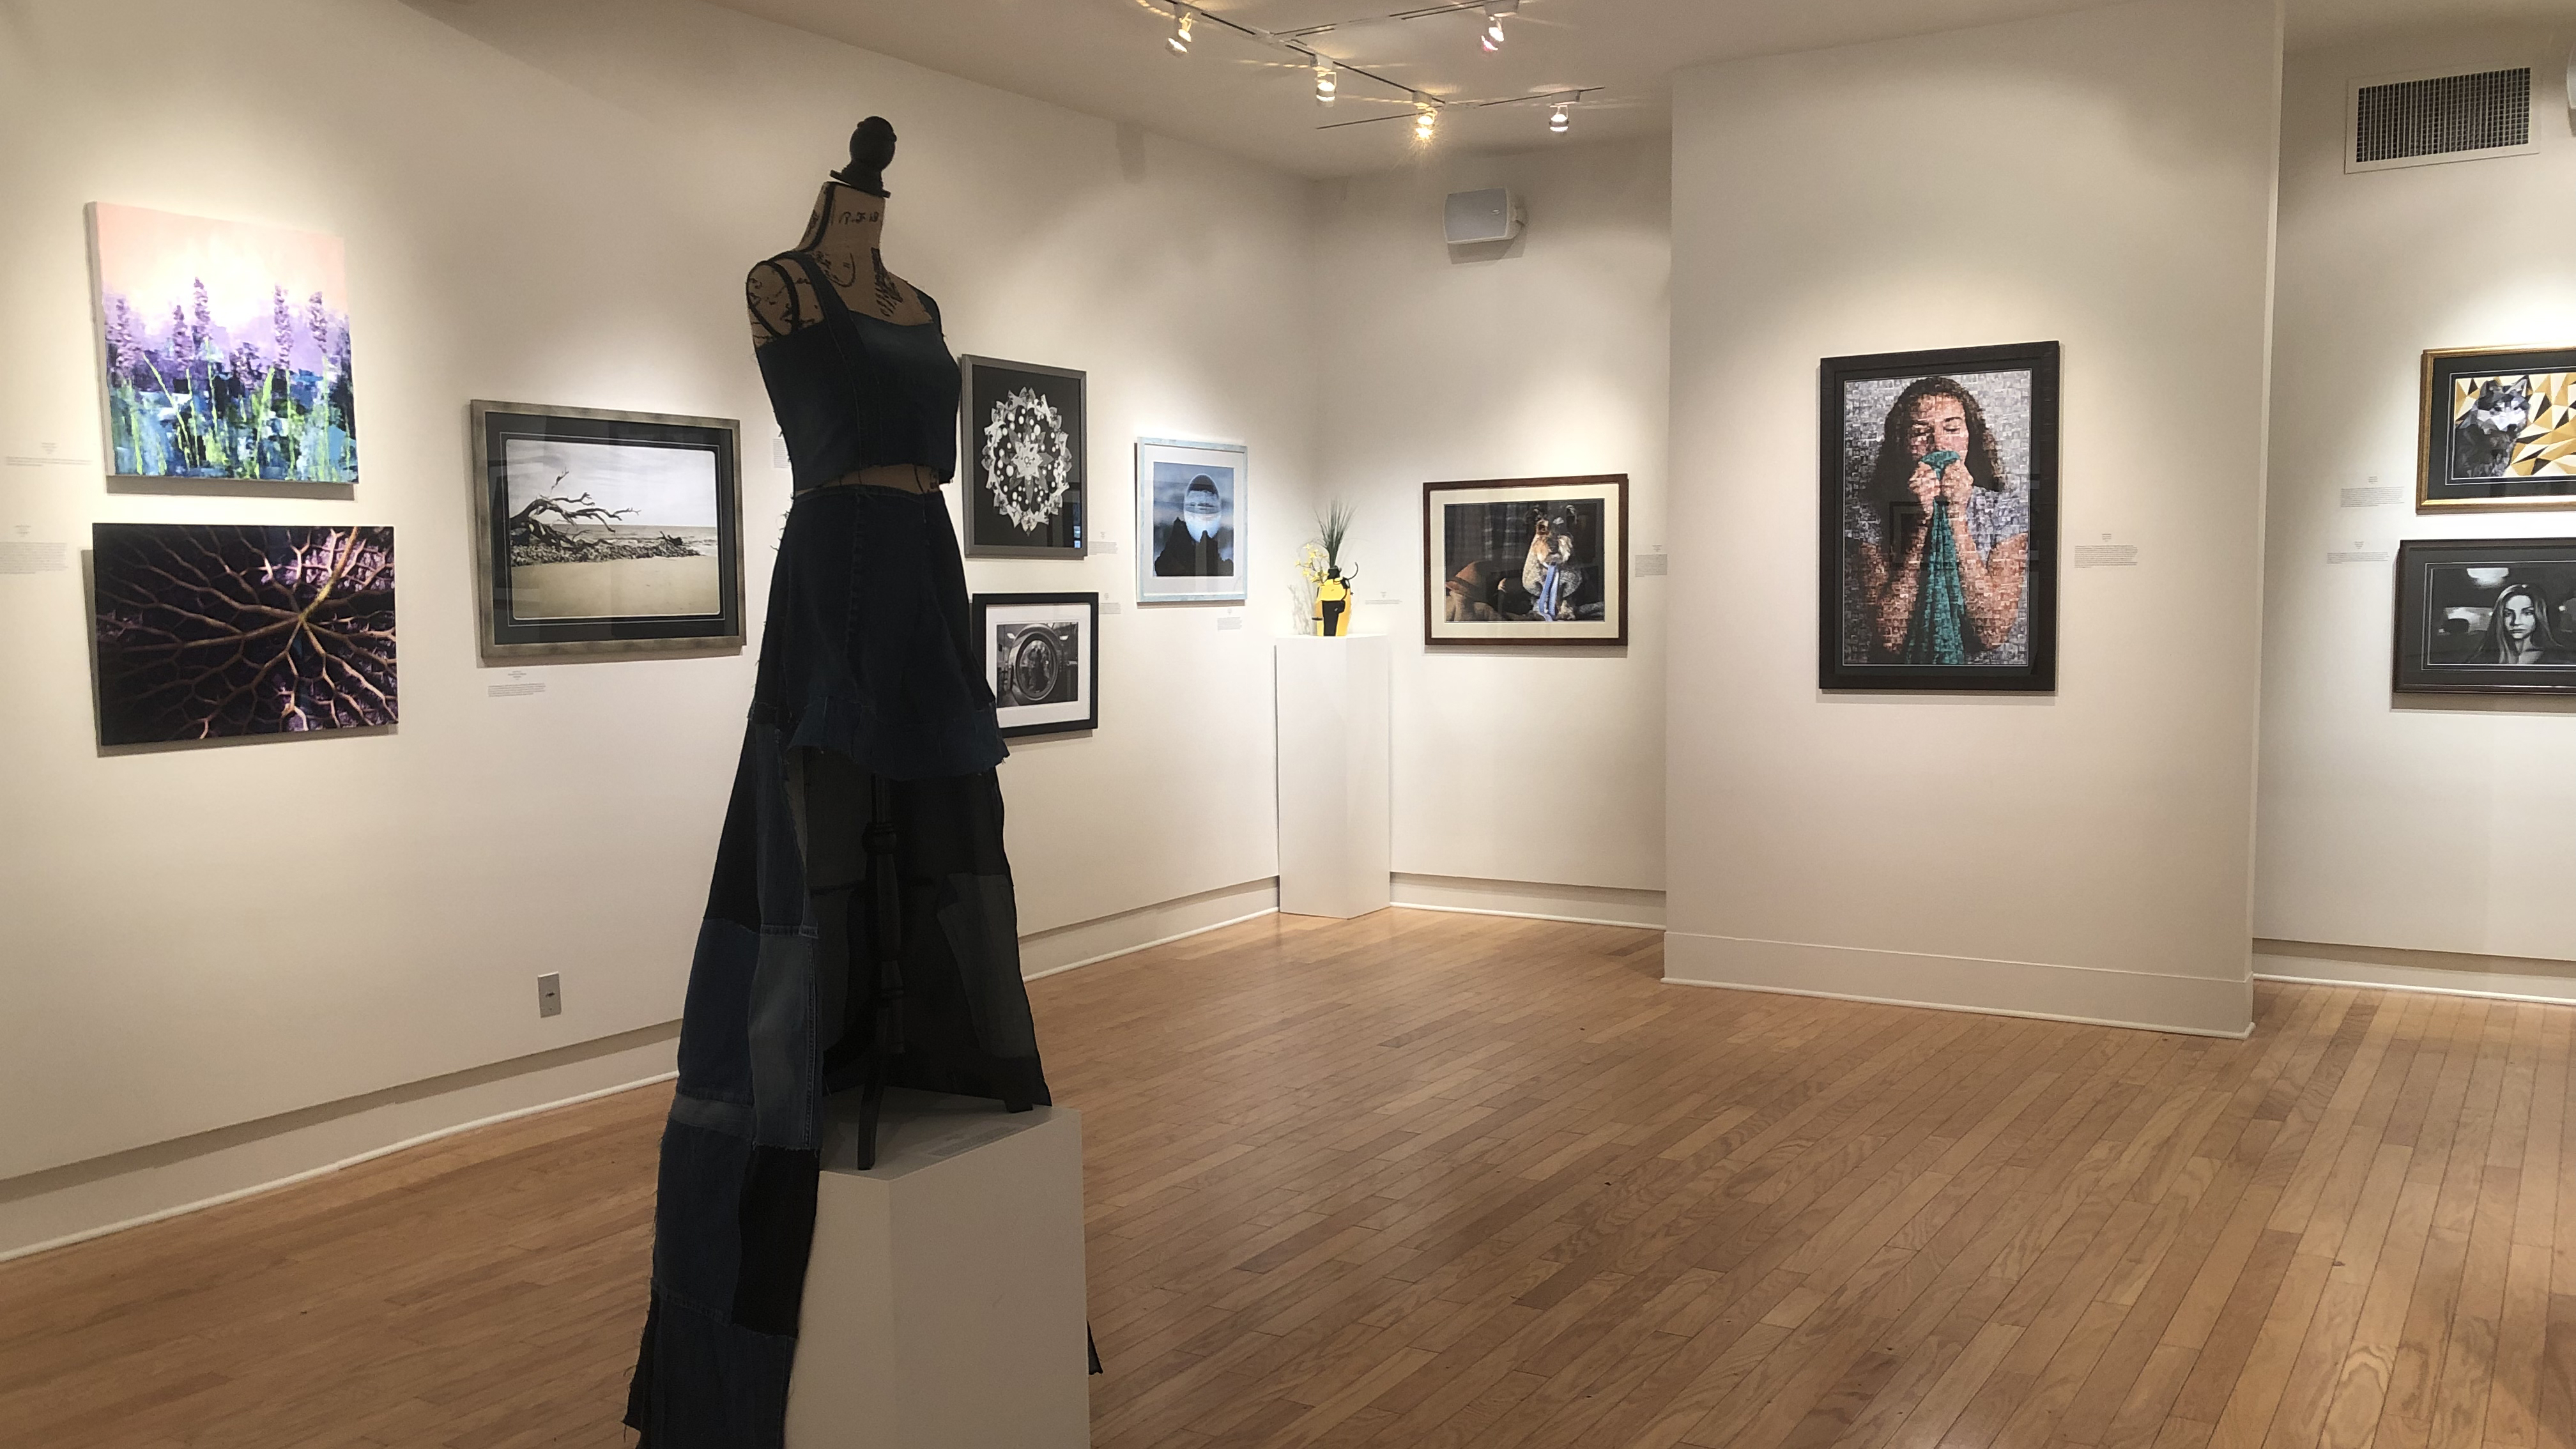 Current Exhibit: Marvin S Cone 33rd Annual High School Juried Art Show